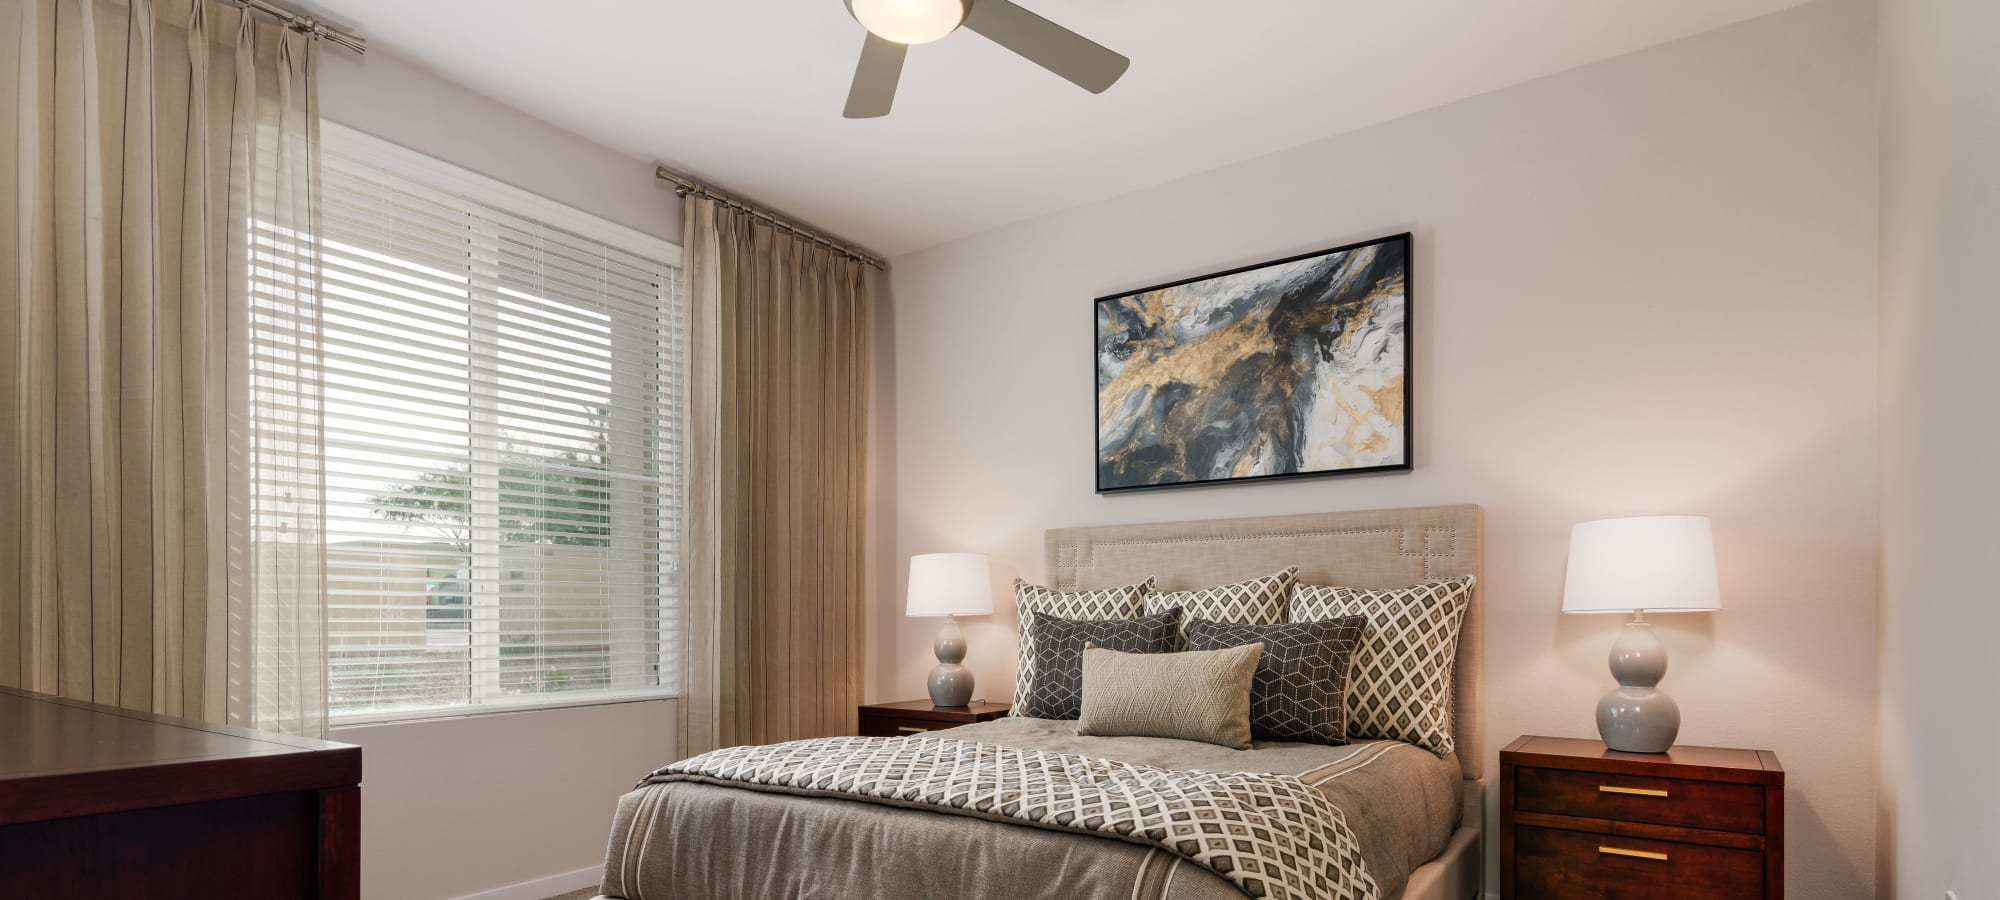 Spacious bedroom with a ceiling fan and large window at Morrison Chandler in Chandler, Arizona